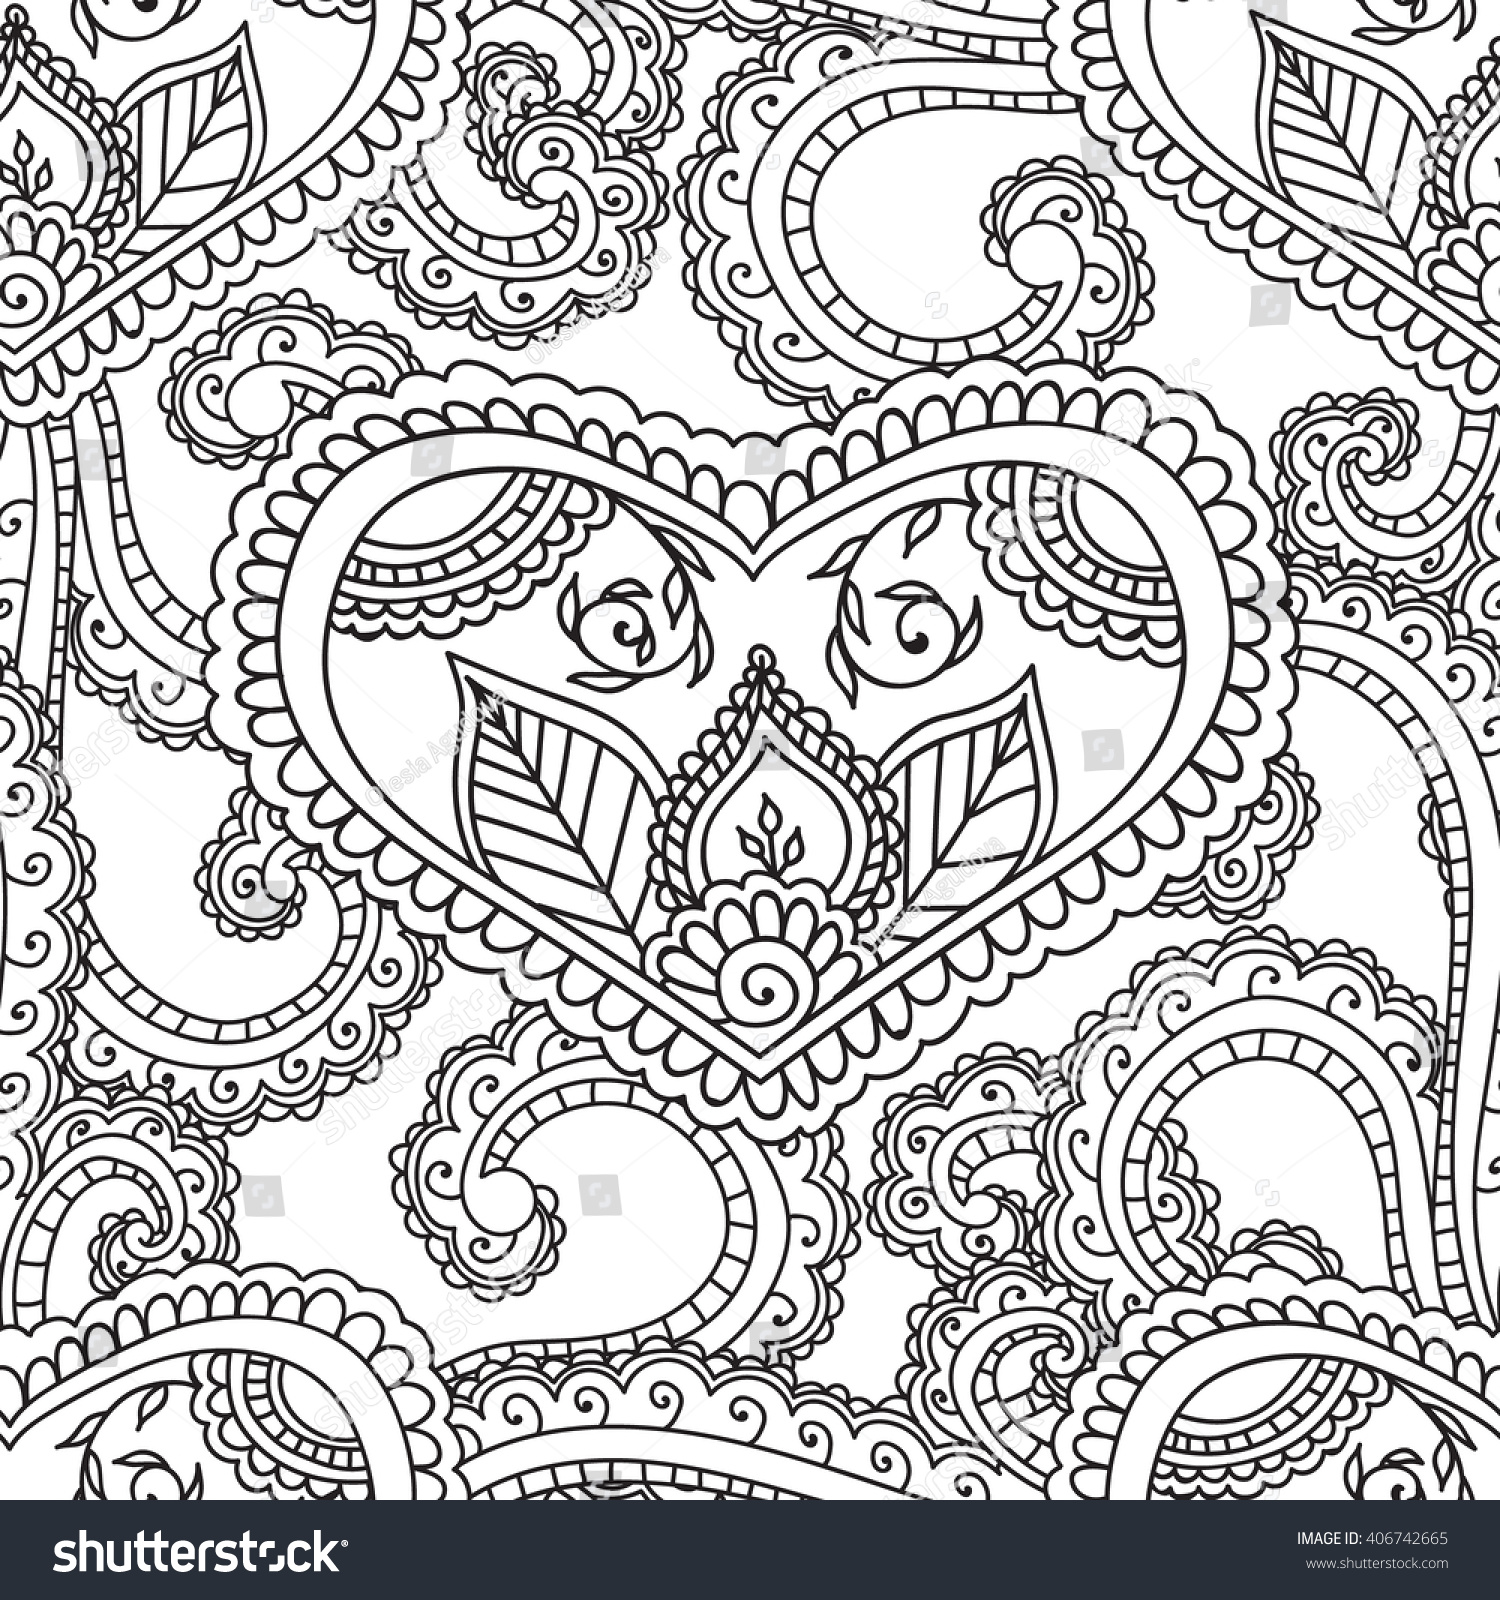 Coloring pages henna - Coloring Pages For Adults Seamless Pattern Henna Mehndi Doodles Zentangle Abstract Floral Paisley